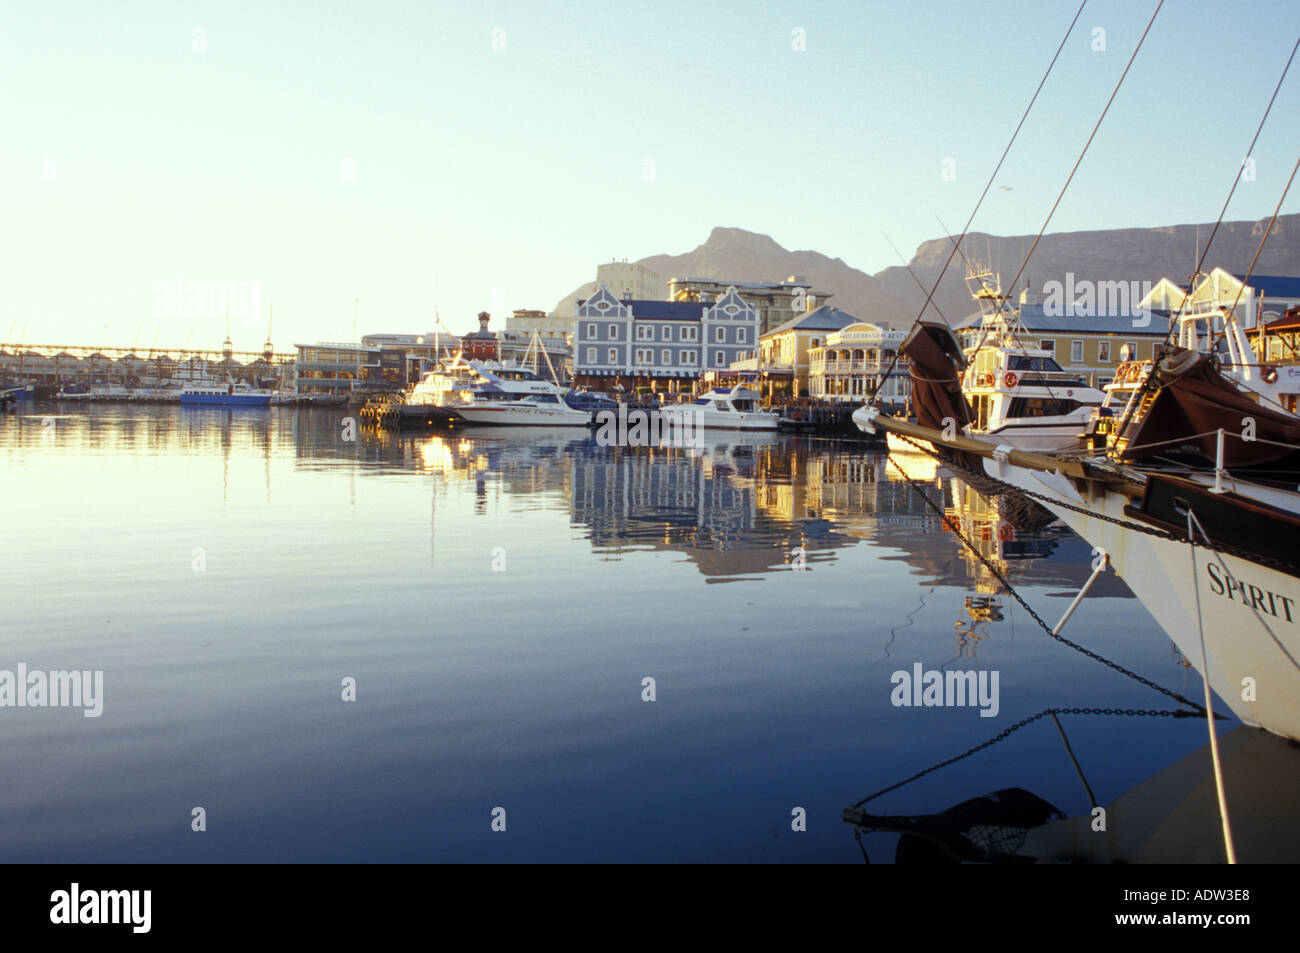 V&A Waterfront, view on Quay 4 und Pier Head, from Quay 5, Capetown (Kaapstad), Western Cape, South Africa - Stock Image